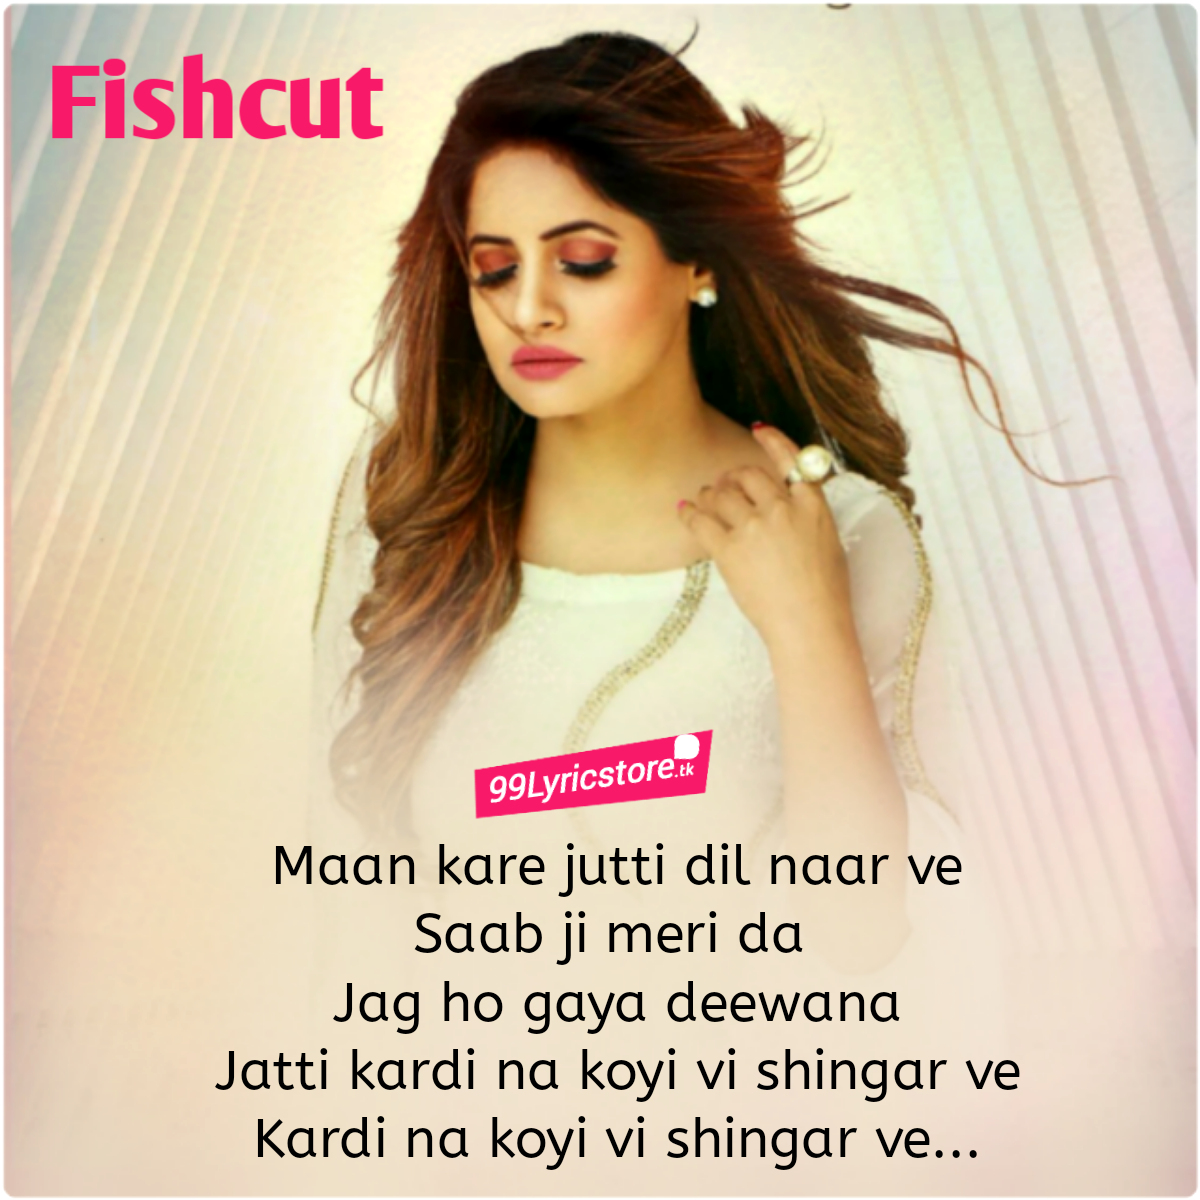 Miss Pooja fishcut Lyrics dj dips